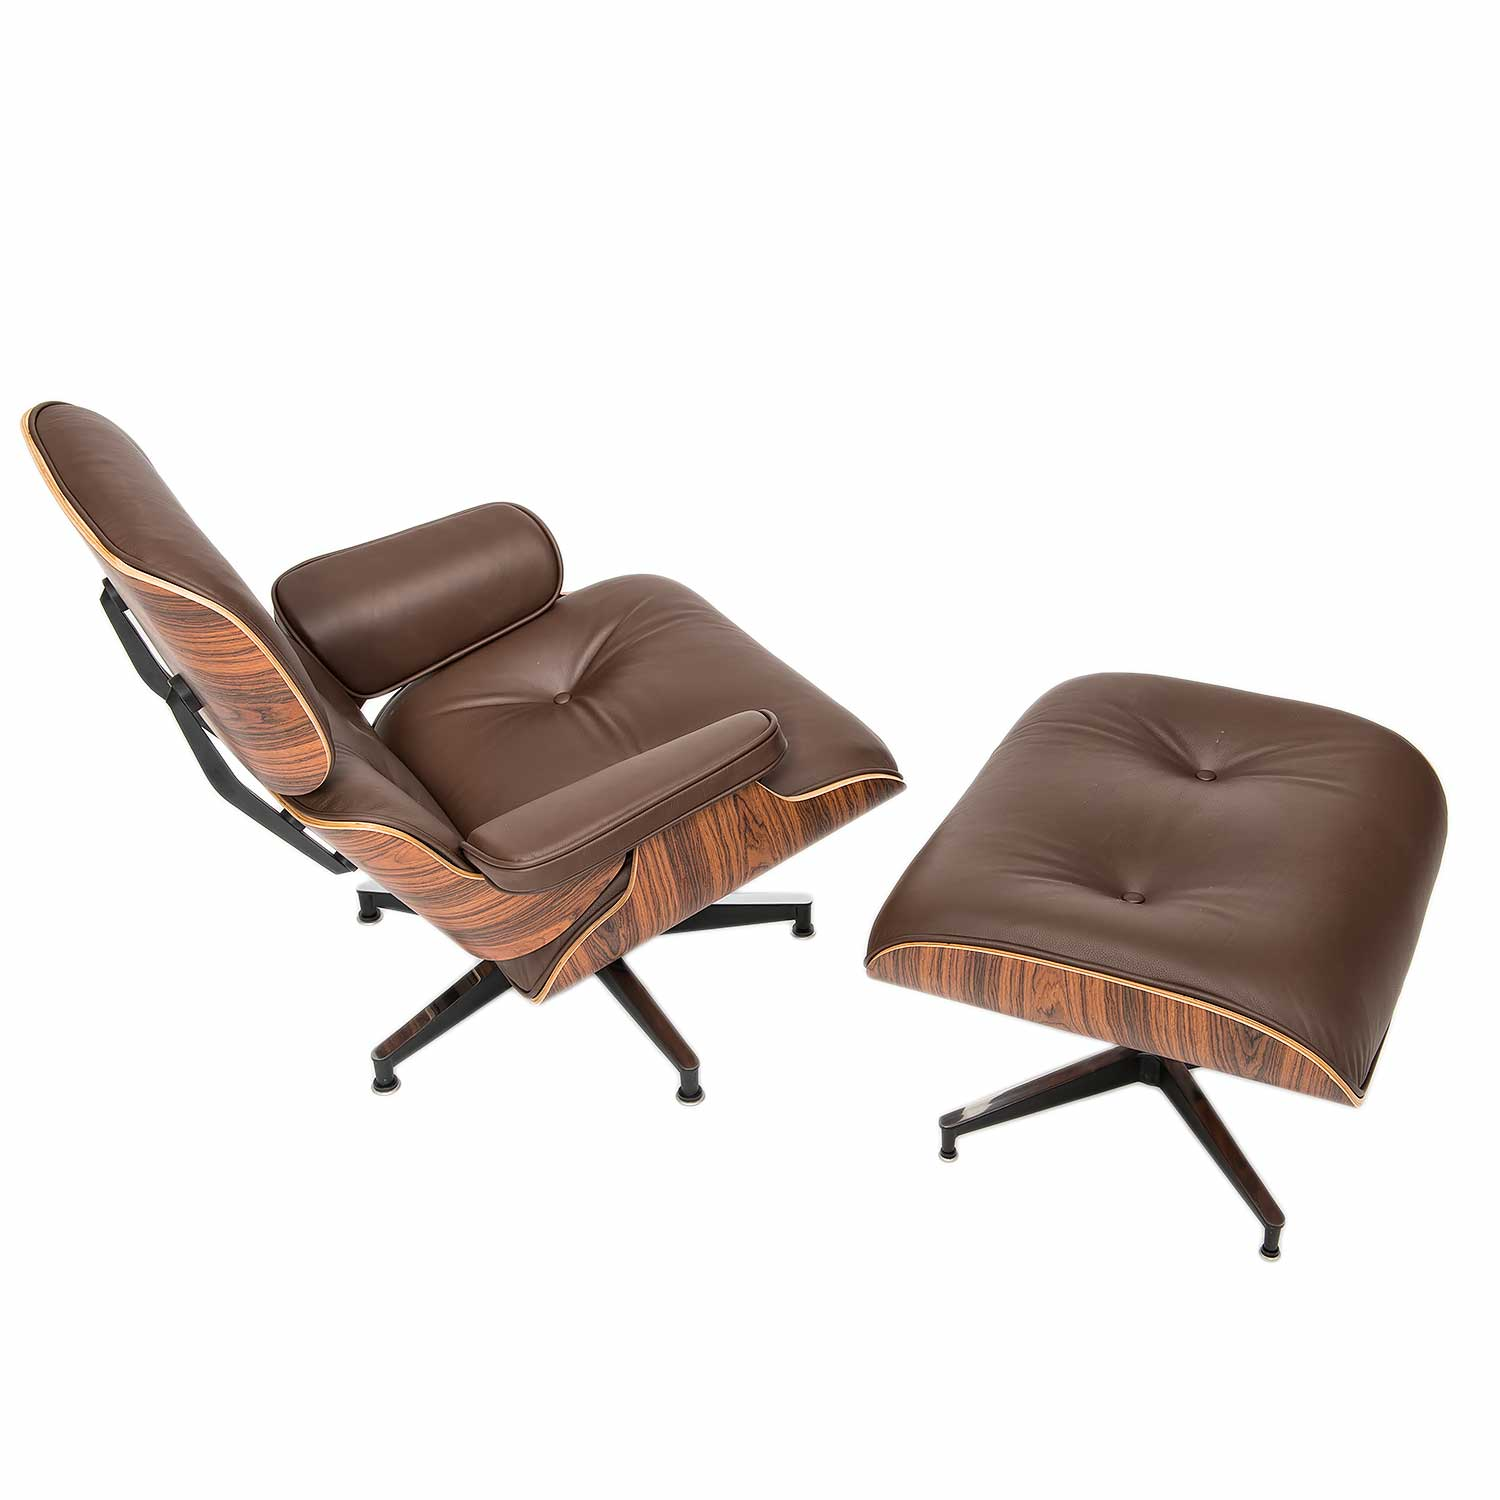 Eames Ottoman Lounge Chair And Ottoman